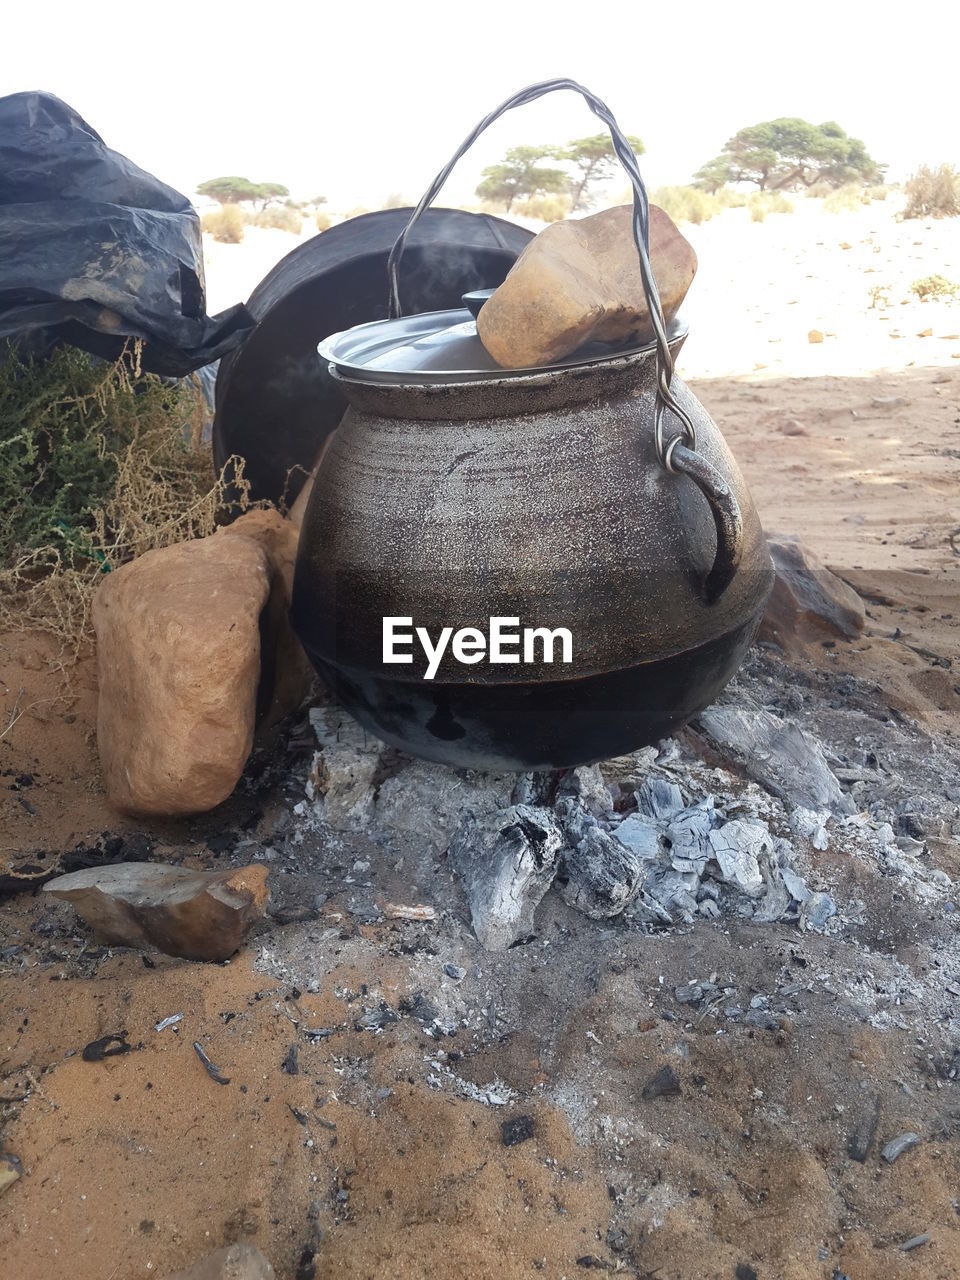 no people, day, preparation, camping stove, outdoors, stove, close-up, food